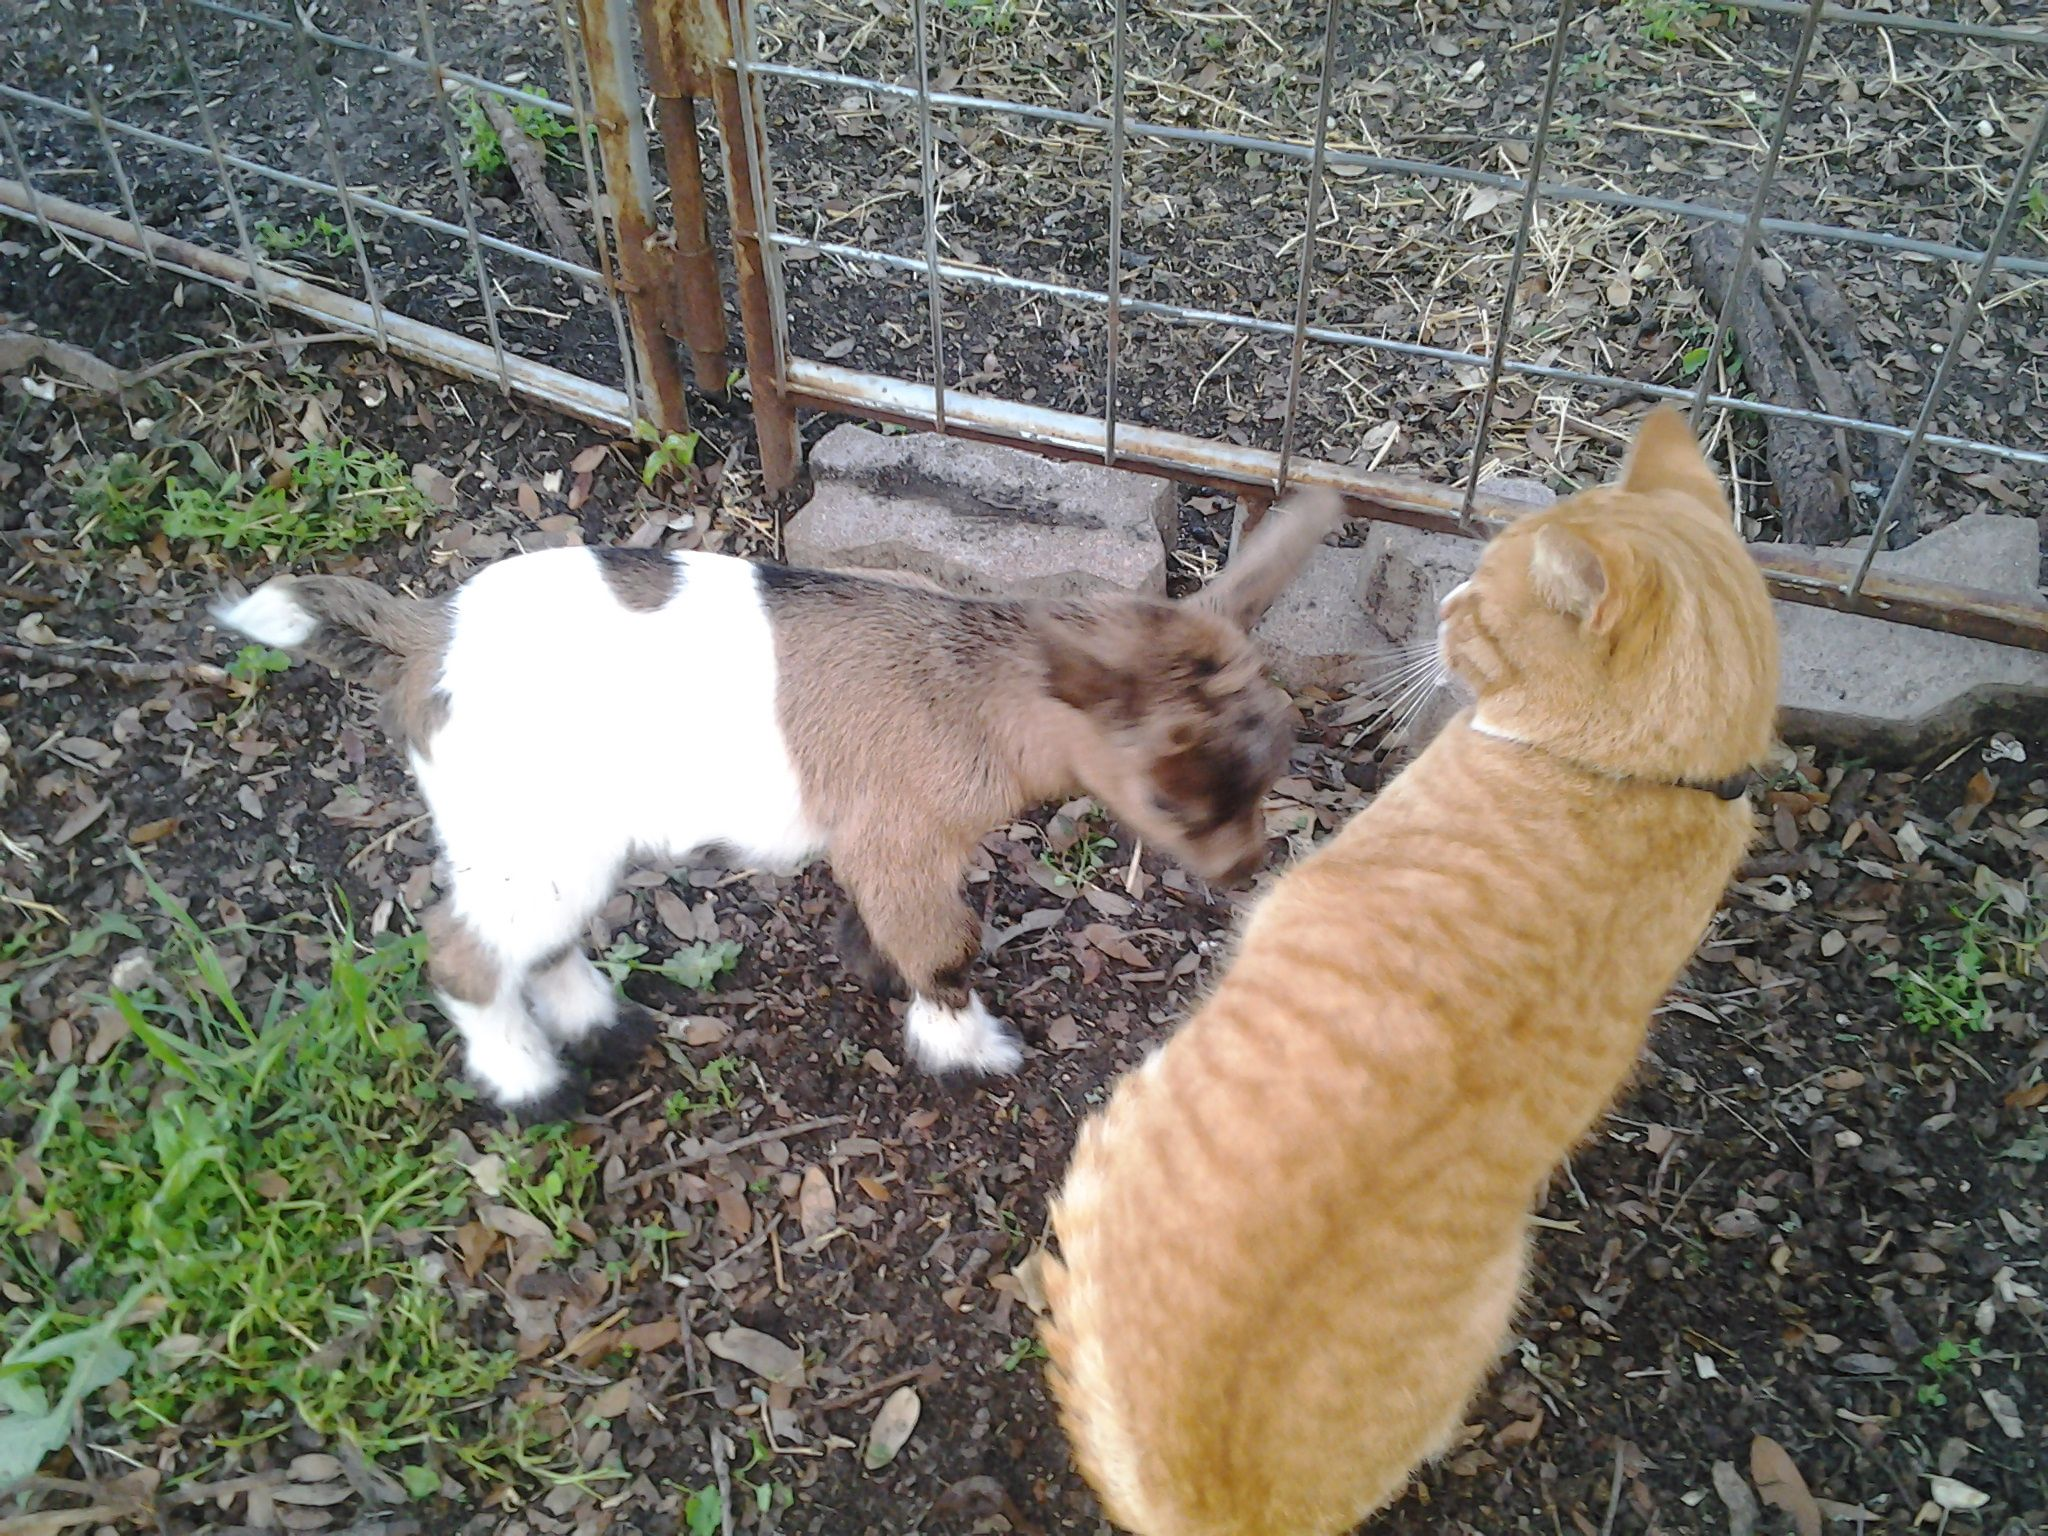 Thelma is pretty curious about Baa's friend Pumba.  :)